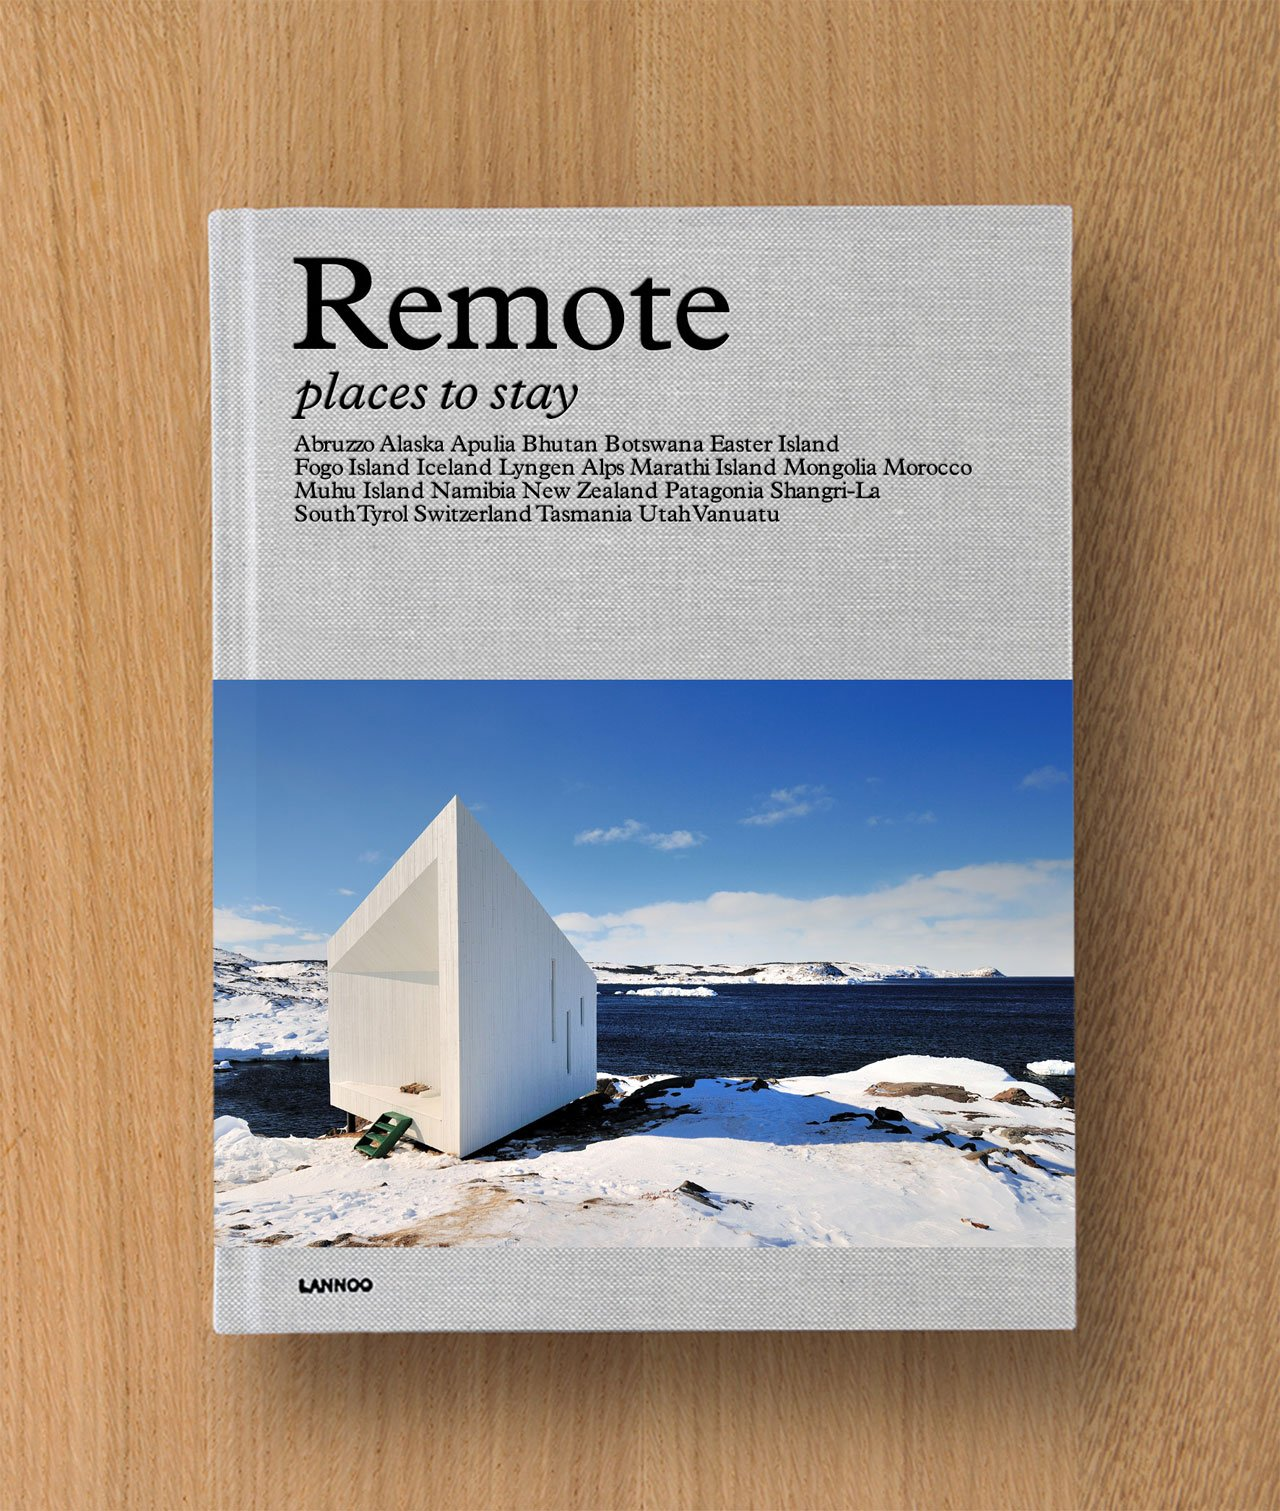 REMOTE book cover, photo © David De Vleeschauwer.